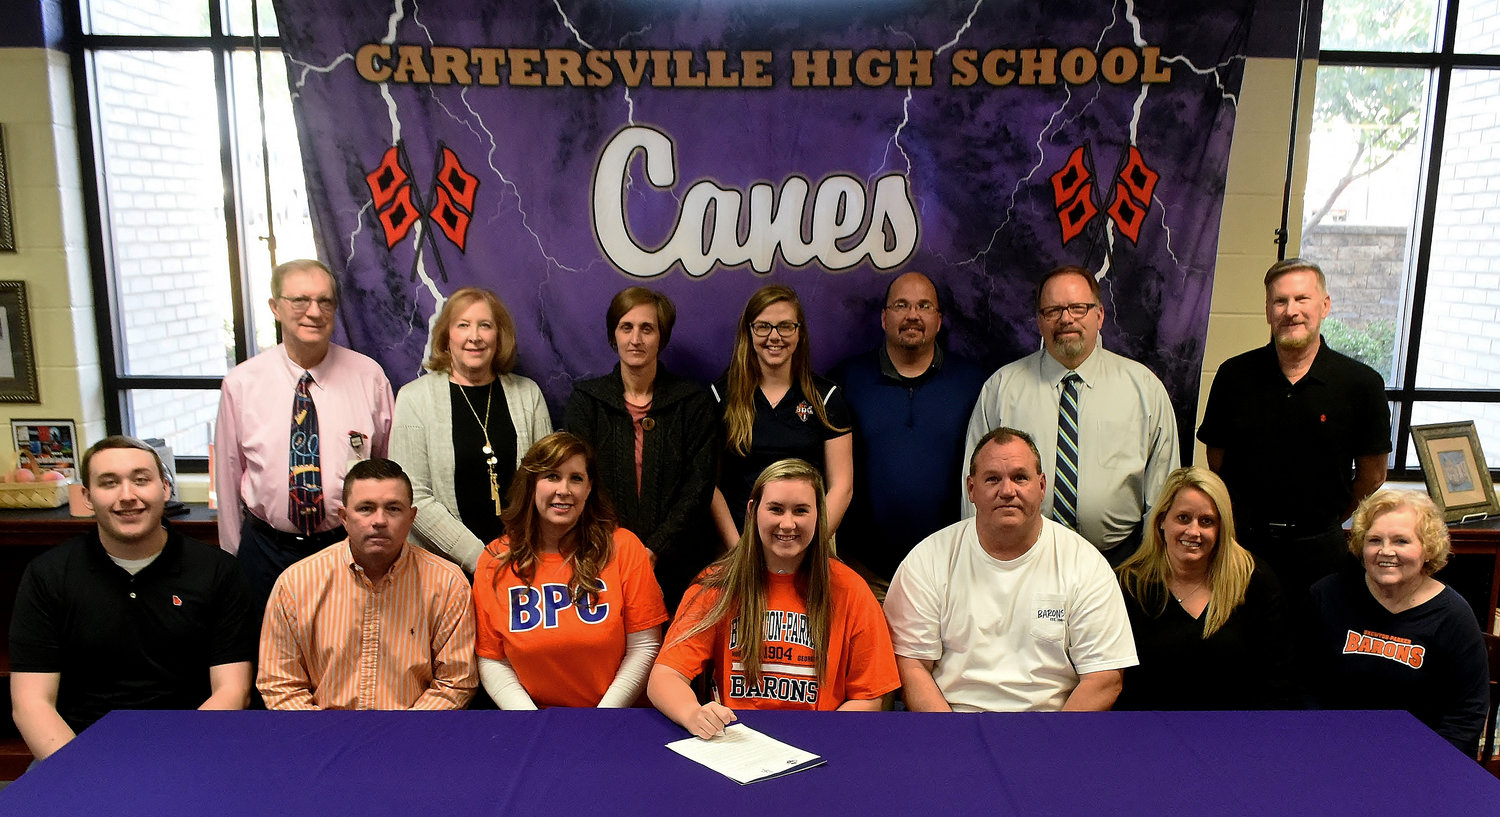 Brewton Parker College >> Canes Setter Hunter Set To Play At Brewton Parker The